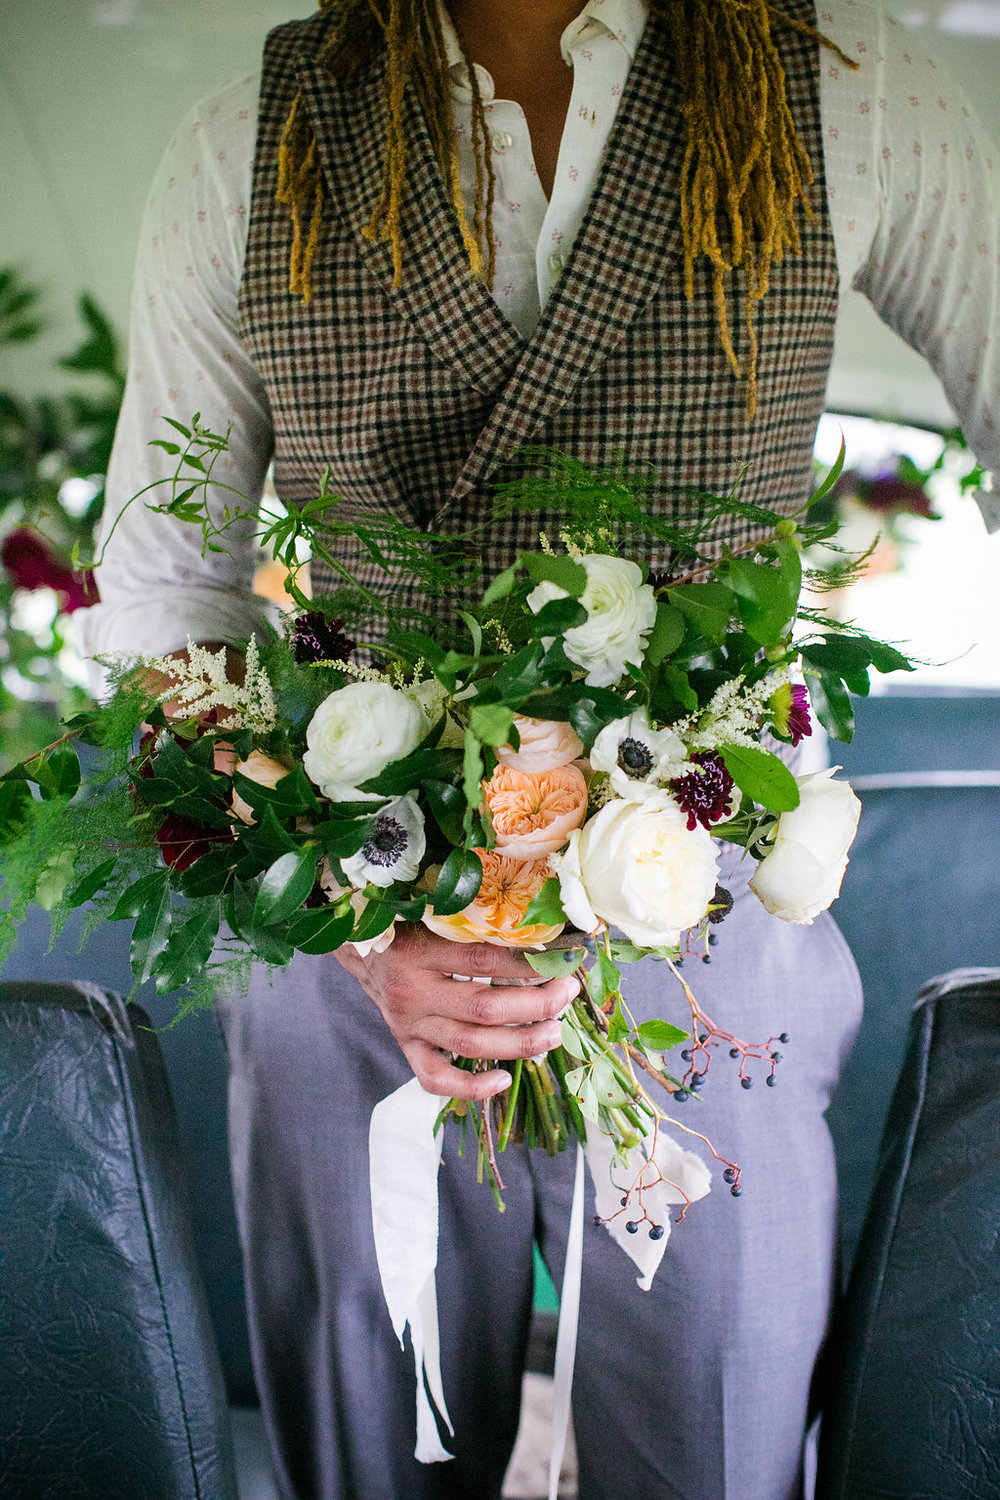 organic, foraged bridal bouquet with peach David Austen garden roses, white David Austen roses, white ranunculus, white anemones, blush ranunculus, burgundy scabiosa, hypericum berries and tons of greenery | citadel beach house charleston wedding planners scarlet plan & design